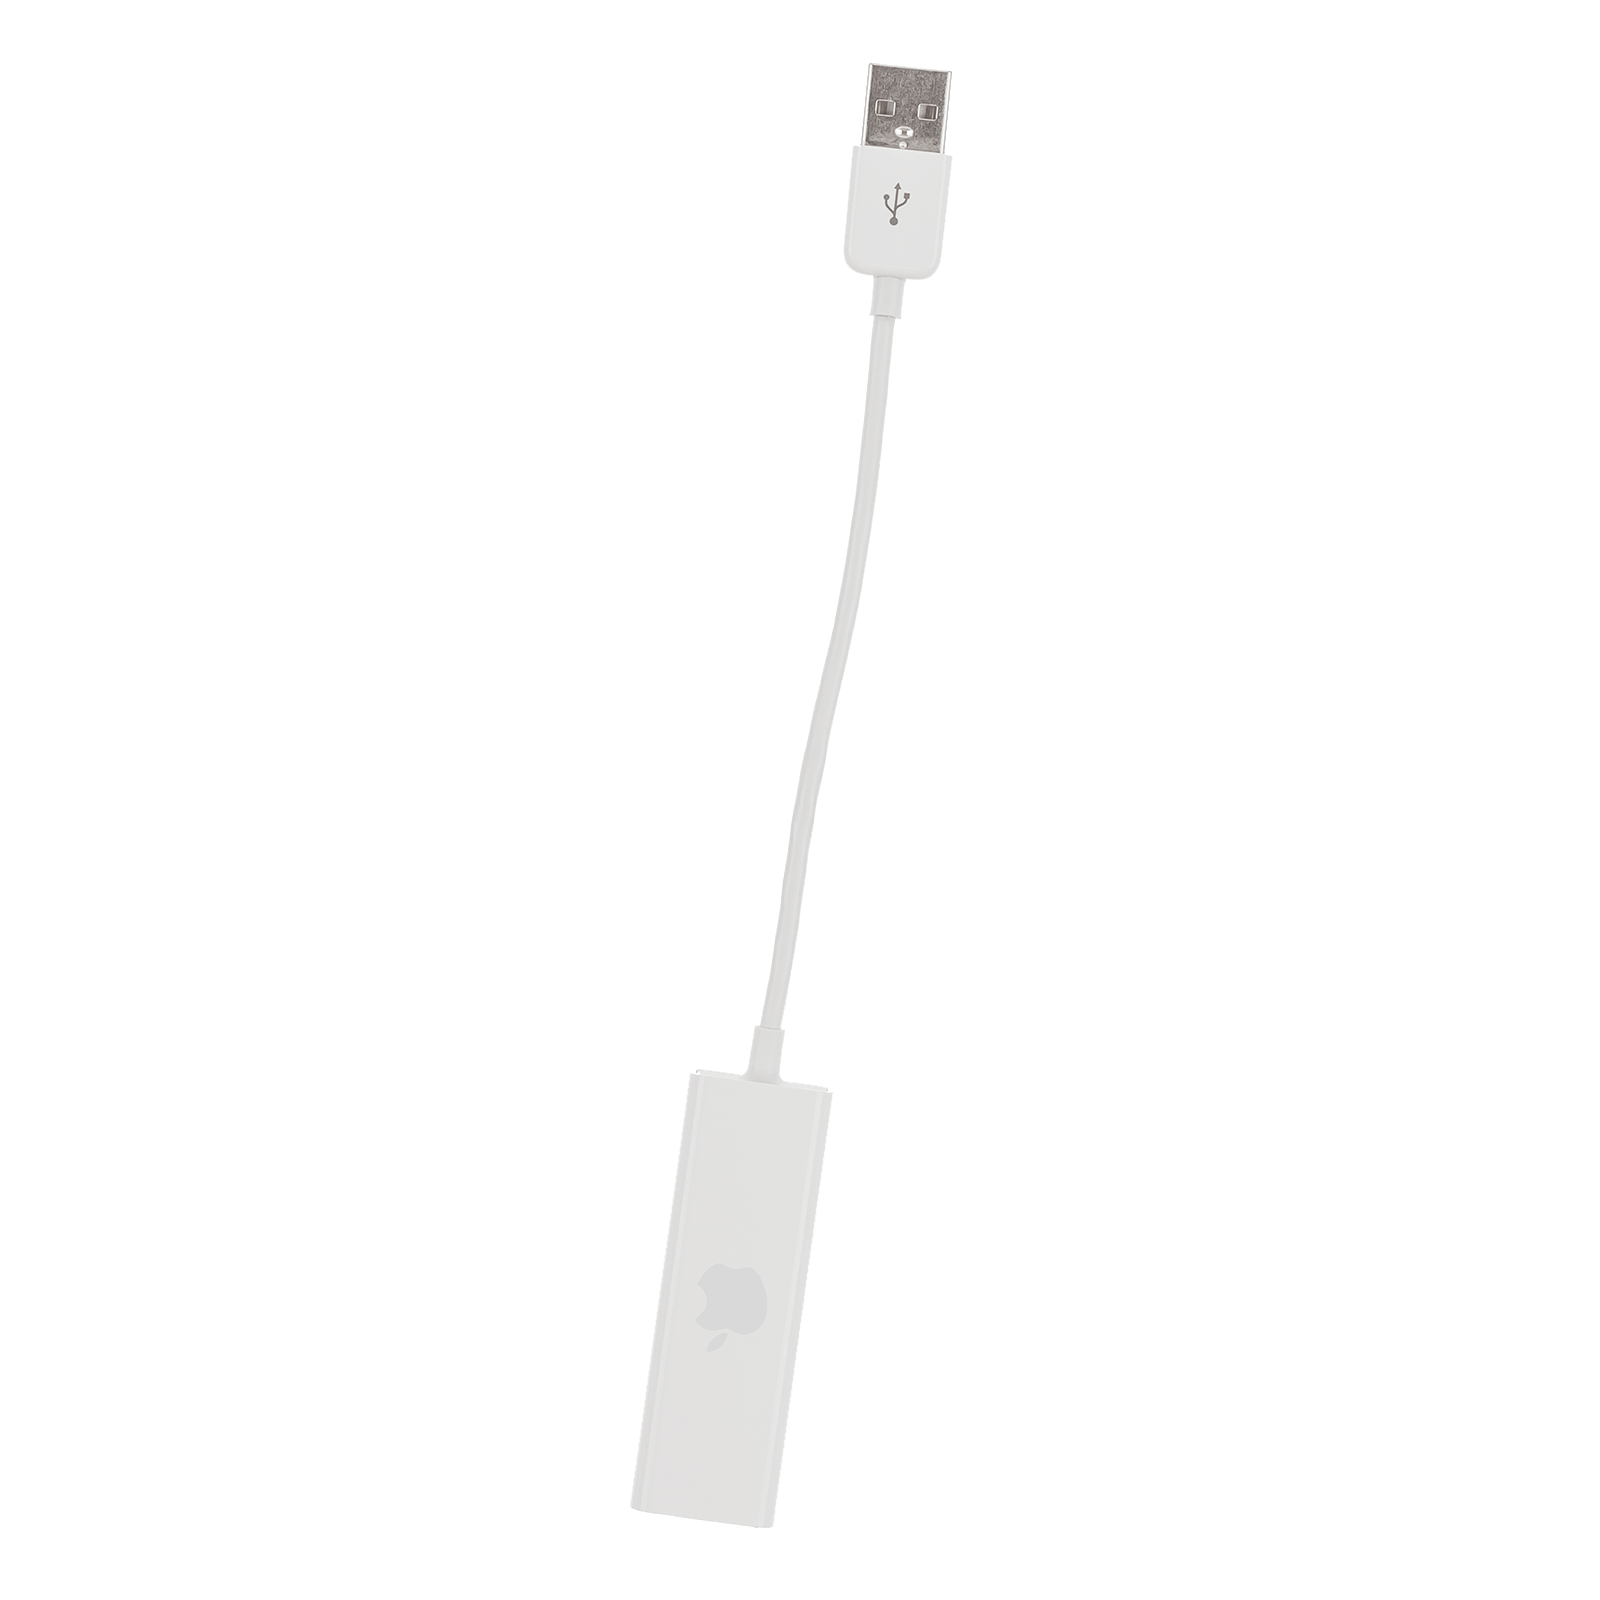 Apple USB to Dial-Up Modem Cable Adapter